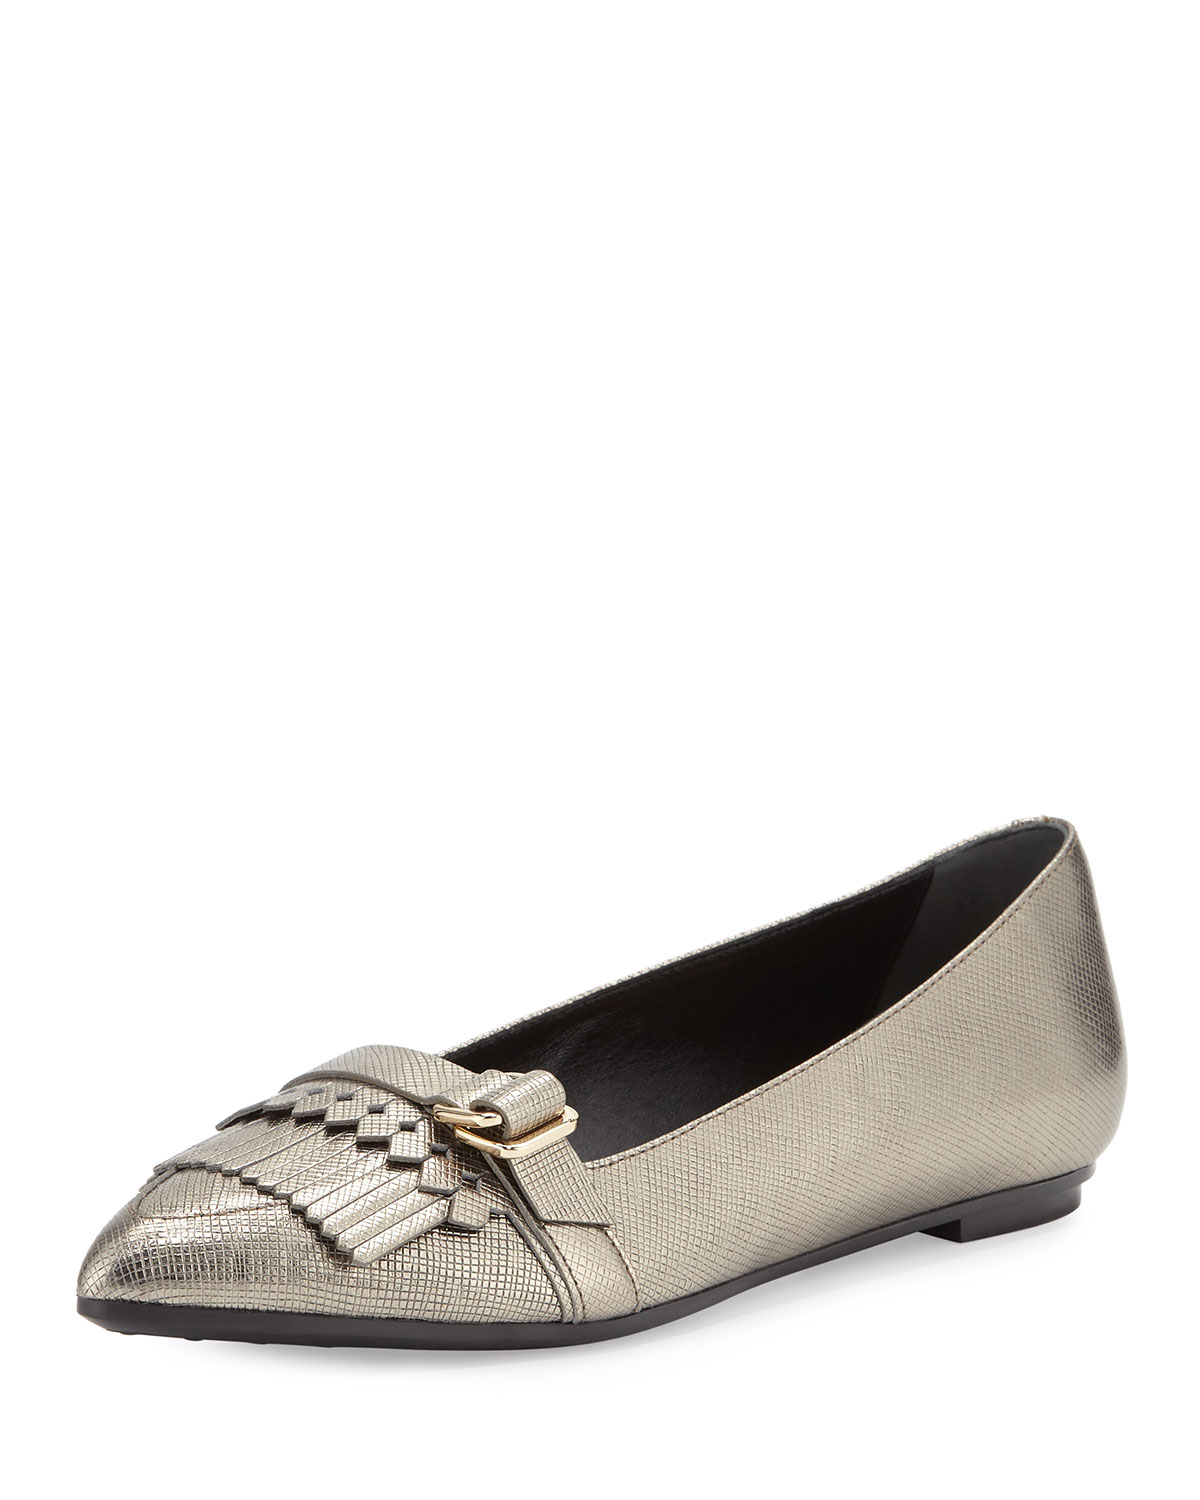 with paypal free shipping Tod's Metallic Leather Flats buy cheap tumblr 4paUe